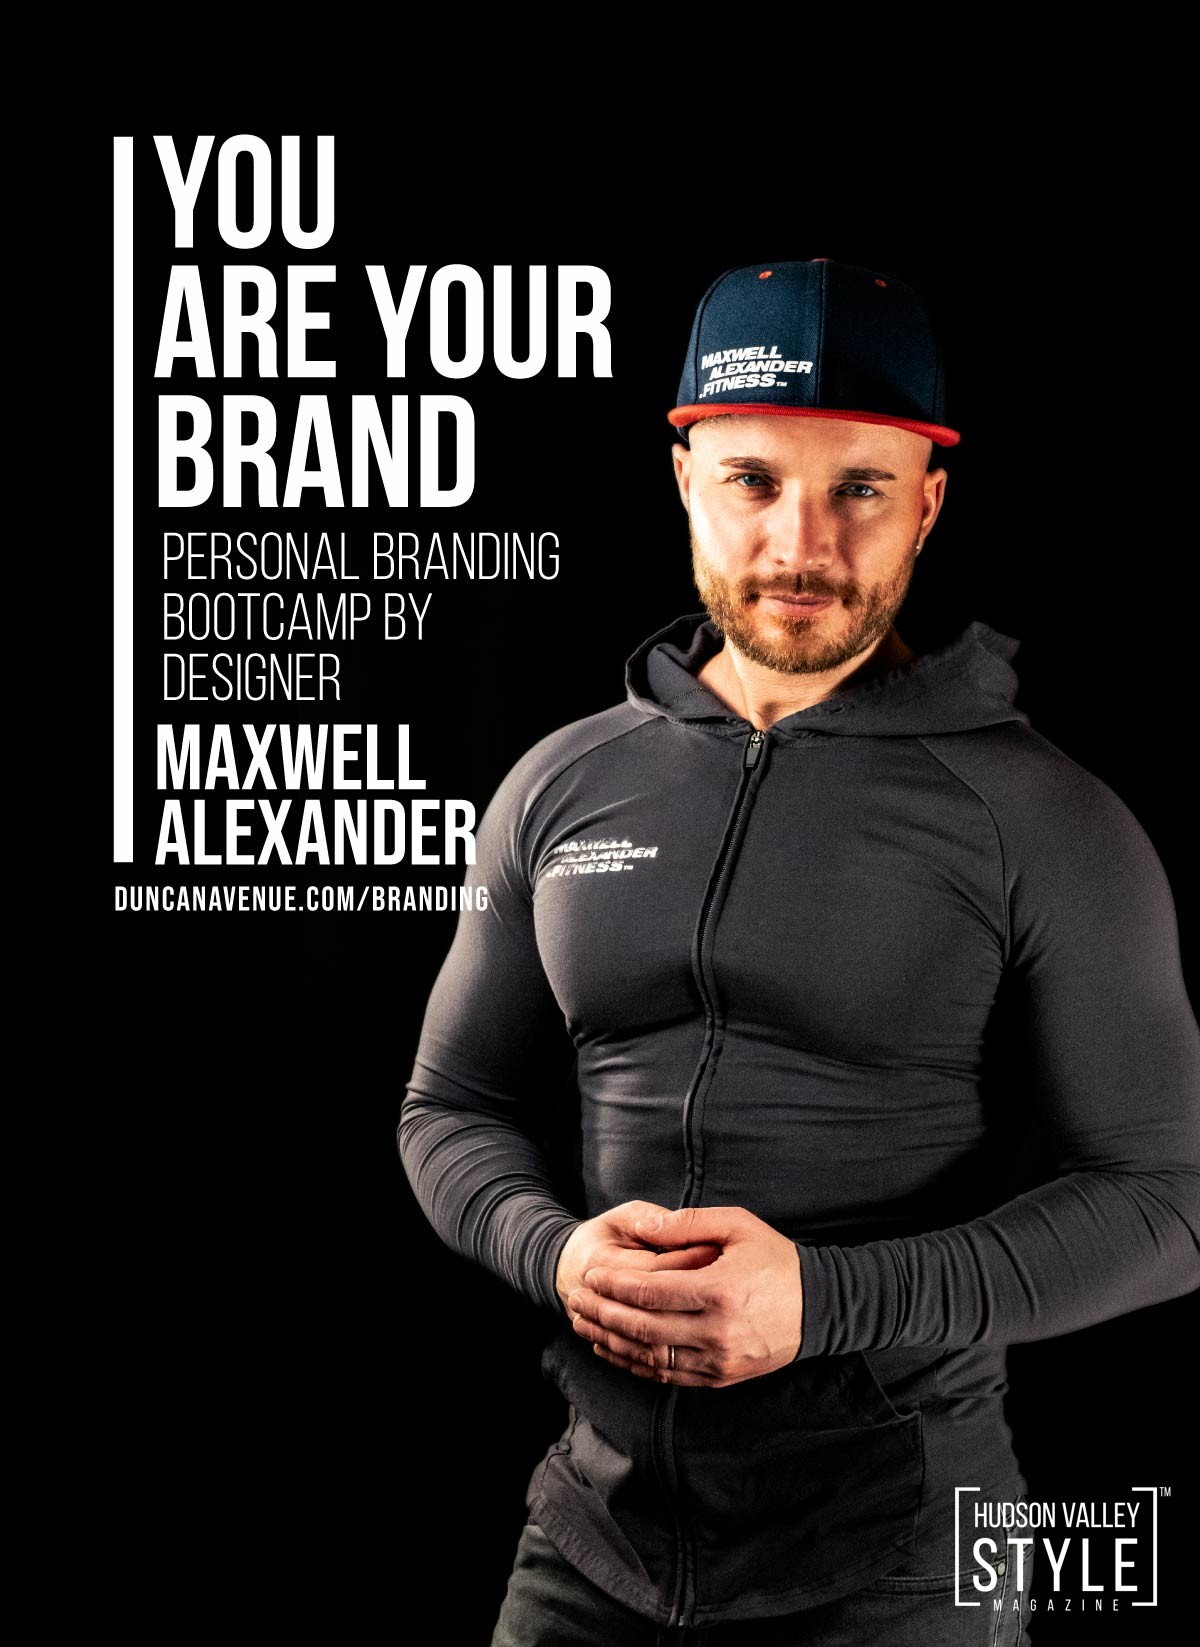 You Are Your Brand - Personal Branding Bootcamp by Coach Maxwell Alexander